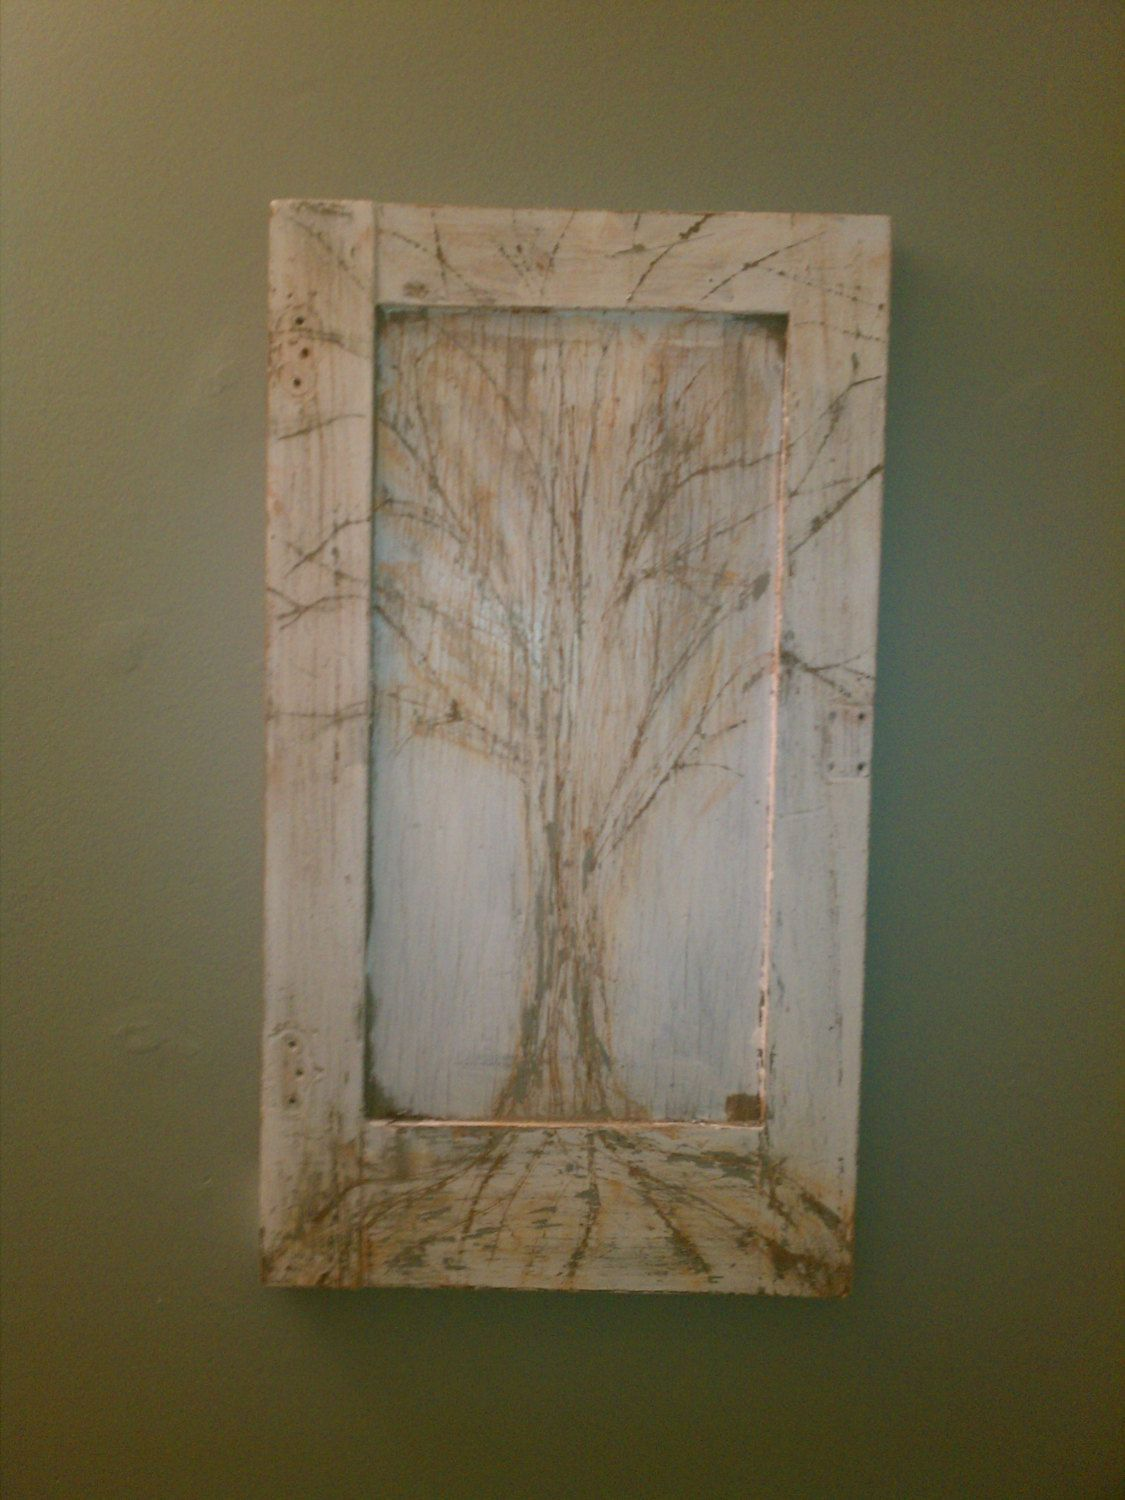 Repurposed old cabinet door wall hanging with tree via